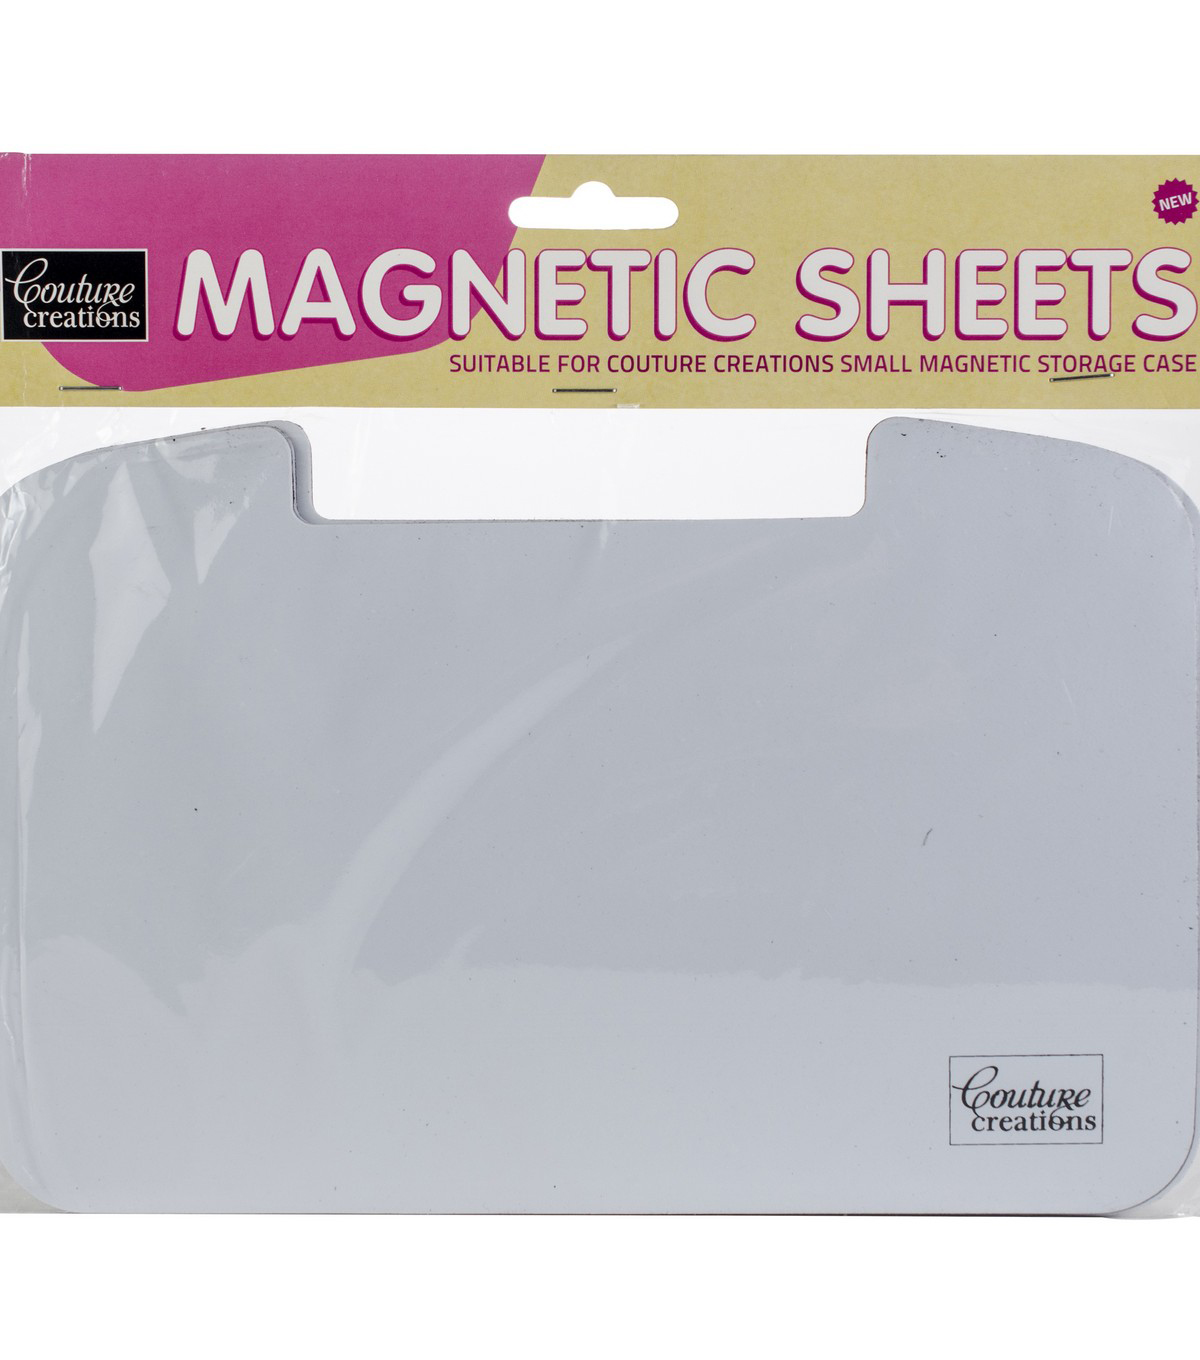 Couture Creations 3 pk 9.4\u0027\u0027x6.2\u0027\u0027 Magnetic Storage Refill Sheets